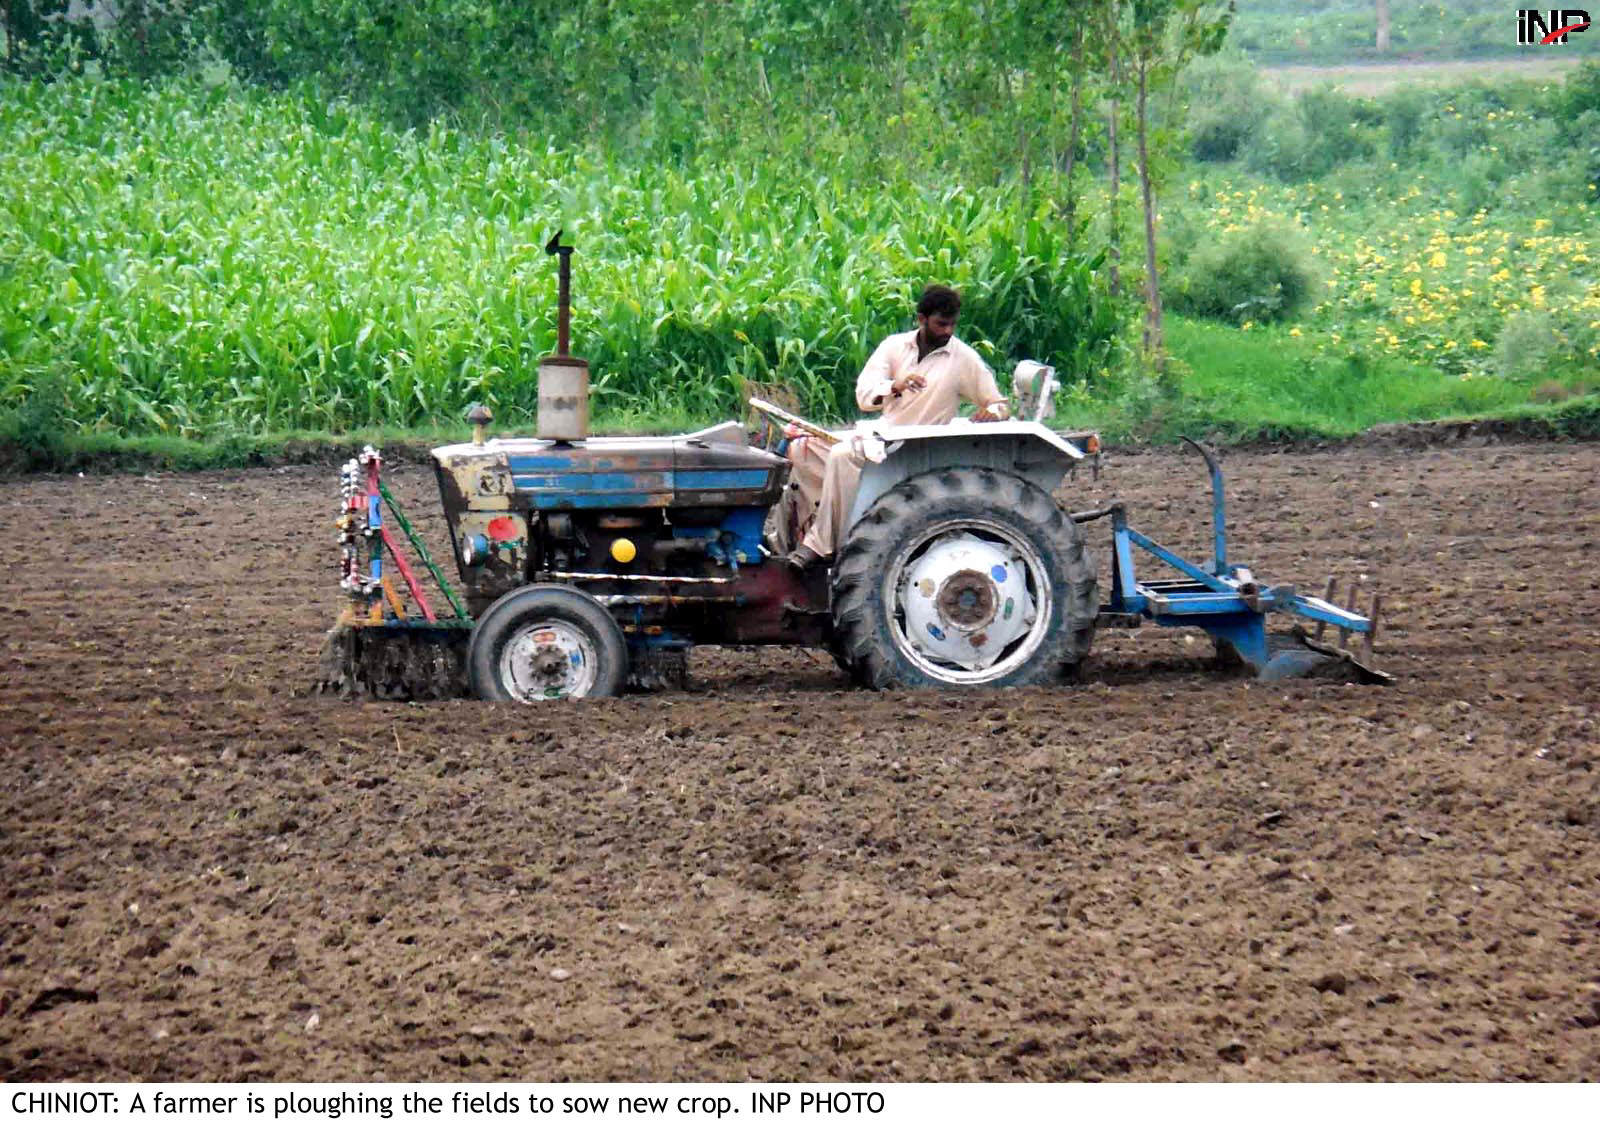 civil society concerned about urban expansion on agricultural land